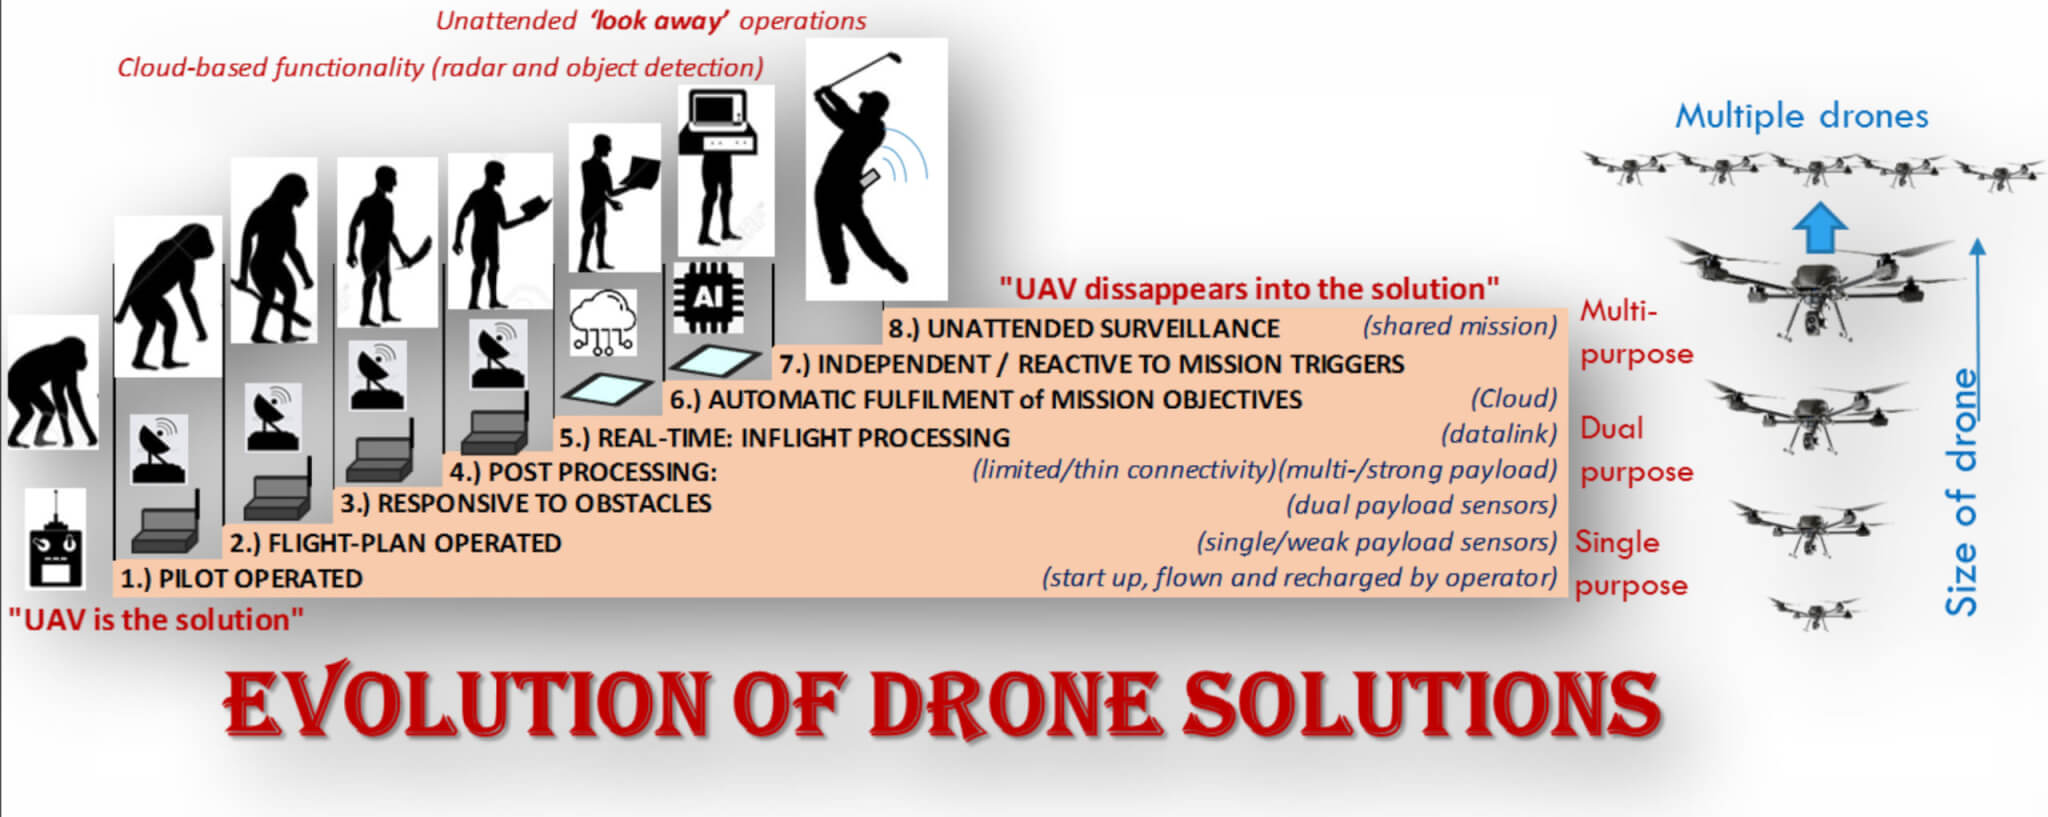 Evolution of drone solutions